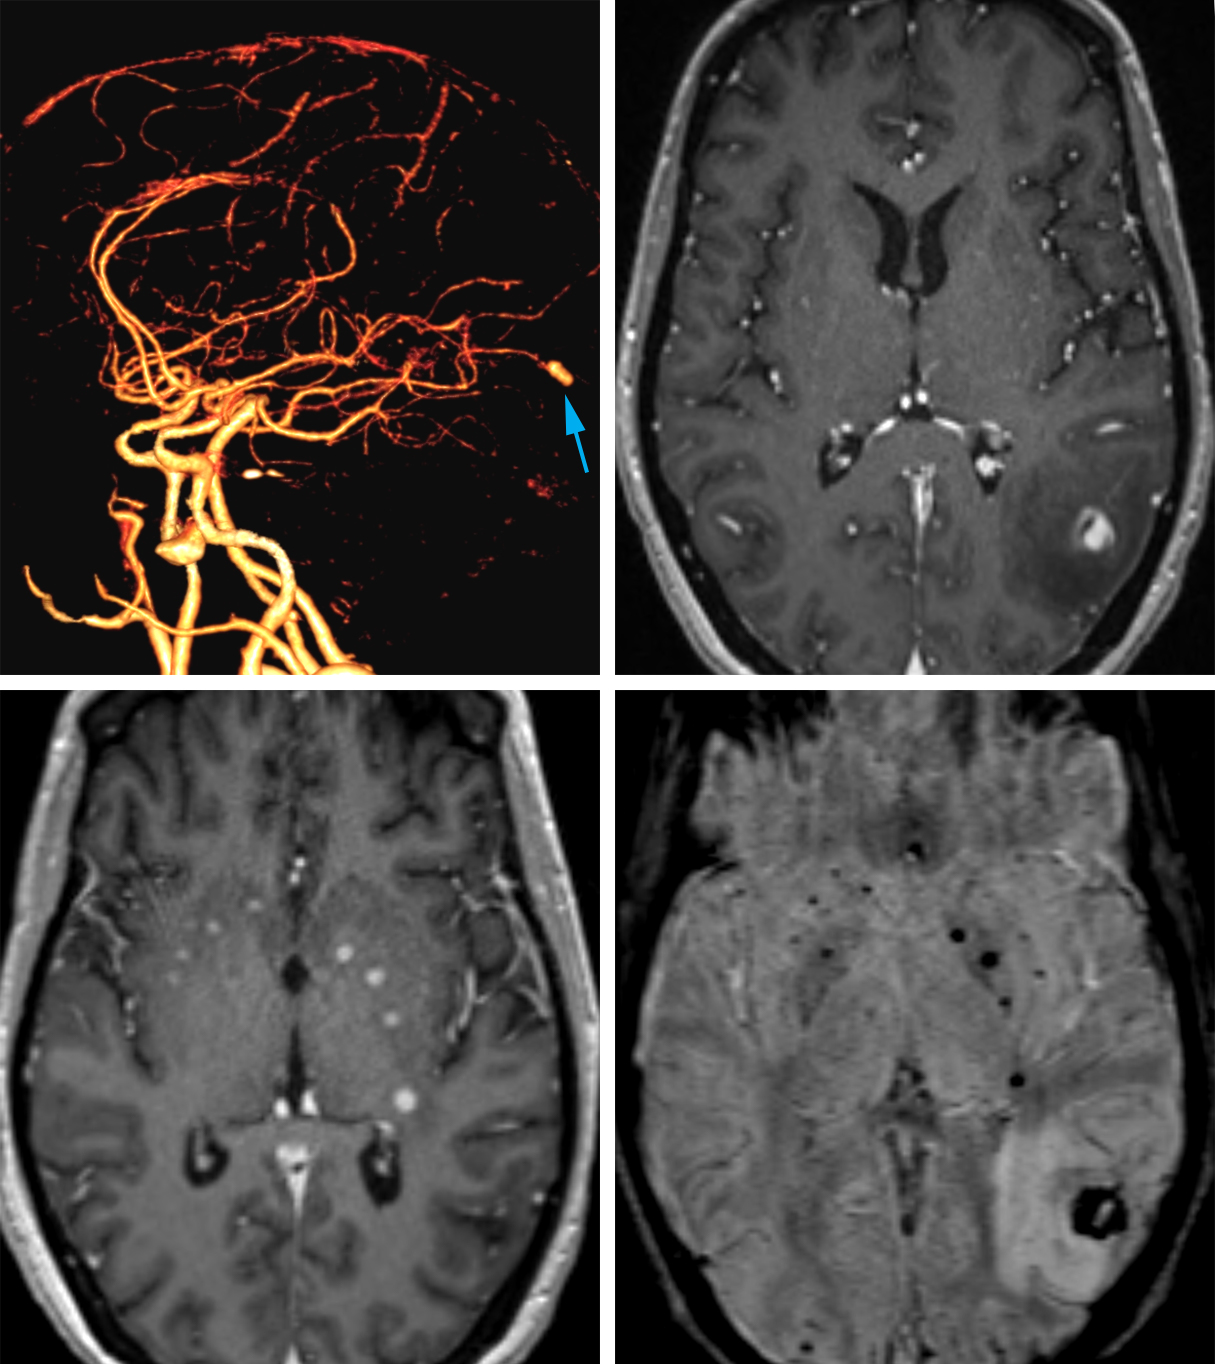 Figure 9: Mycotic aneurysm. (Top Left) The 3D reformatted CTA shows an aneurysm in an unusual location arising from the distal posterior cerebral artery (arrow). (Top Right) The contrast-enhanced T1-weighted MRI also demonstrates the location of this enhancing aneurysm in the lateral left occipital lobe with surrounding hypointense edema. (Bottom Left) More inferiorly, contrast-enhanced MRI also shows several small enhancing abscesses in and around the basal ganglia, often arising contemporaneously with mycotic aneurysms due to their shared etiology. (Bottom Right) These lesions are often associated with hemorrhage, as demonstrated by the low signal intensity areas on SWI MRI.